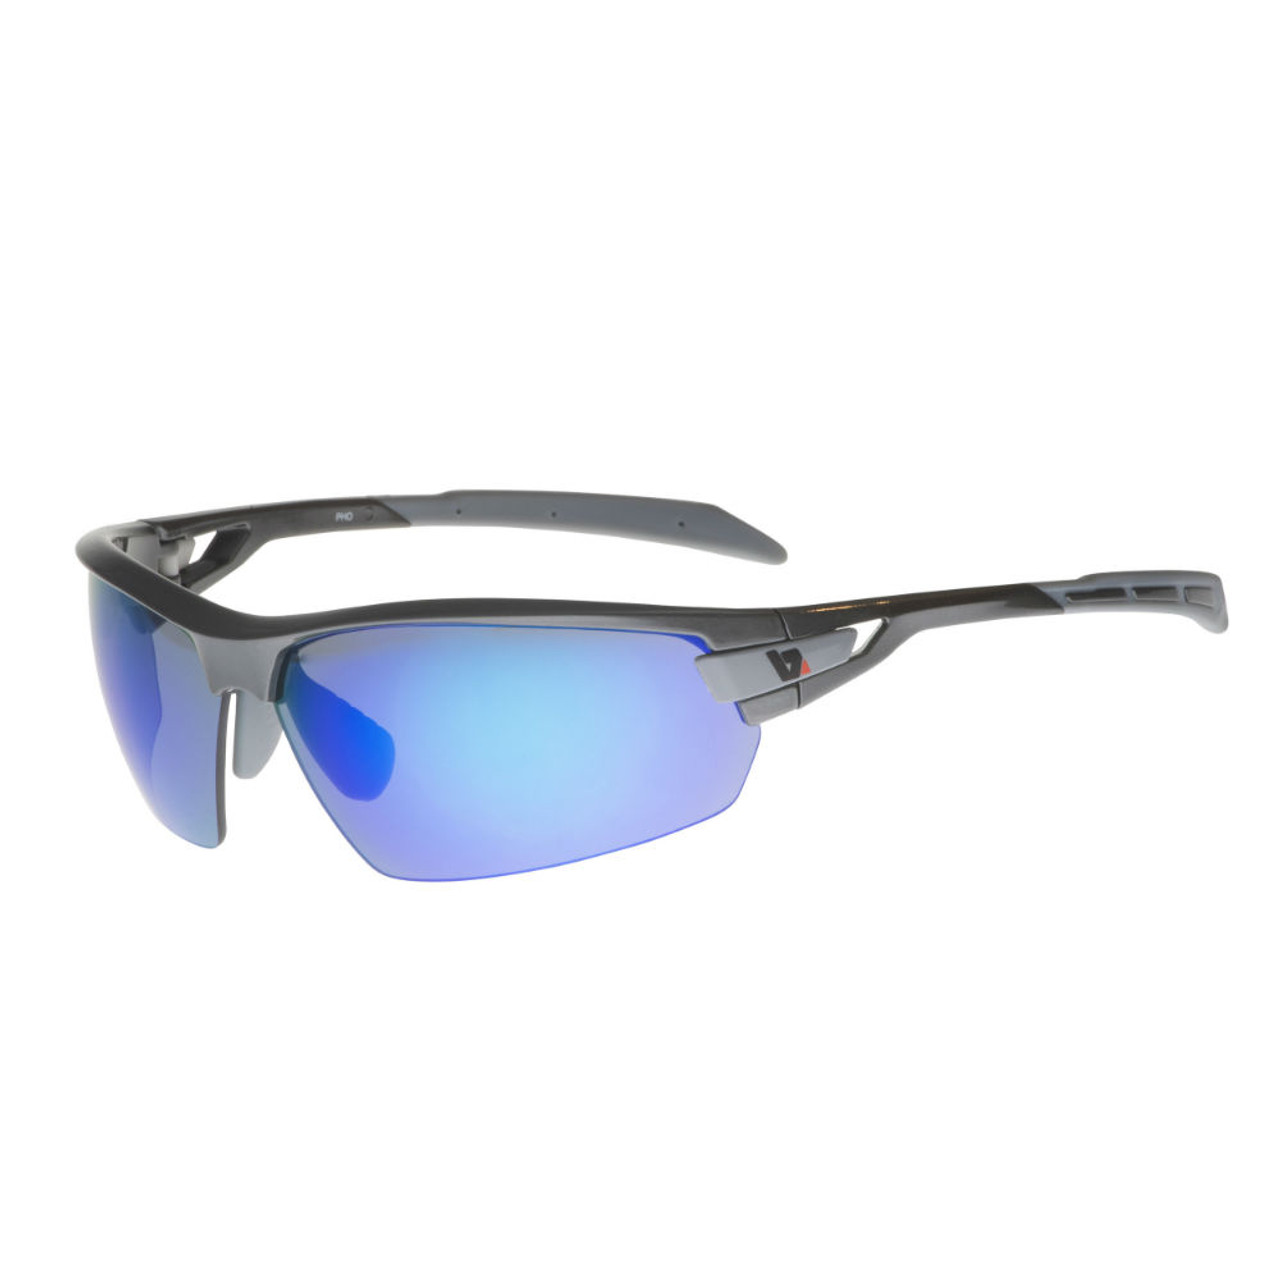 Mirror Frame Glasses Bz Optics Sports Sunglasses Pho Graphite Frame Blue Mirror Lens